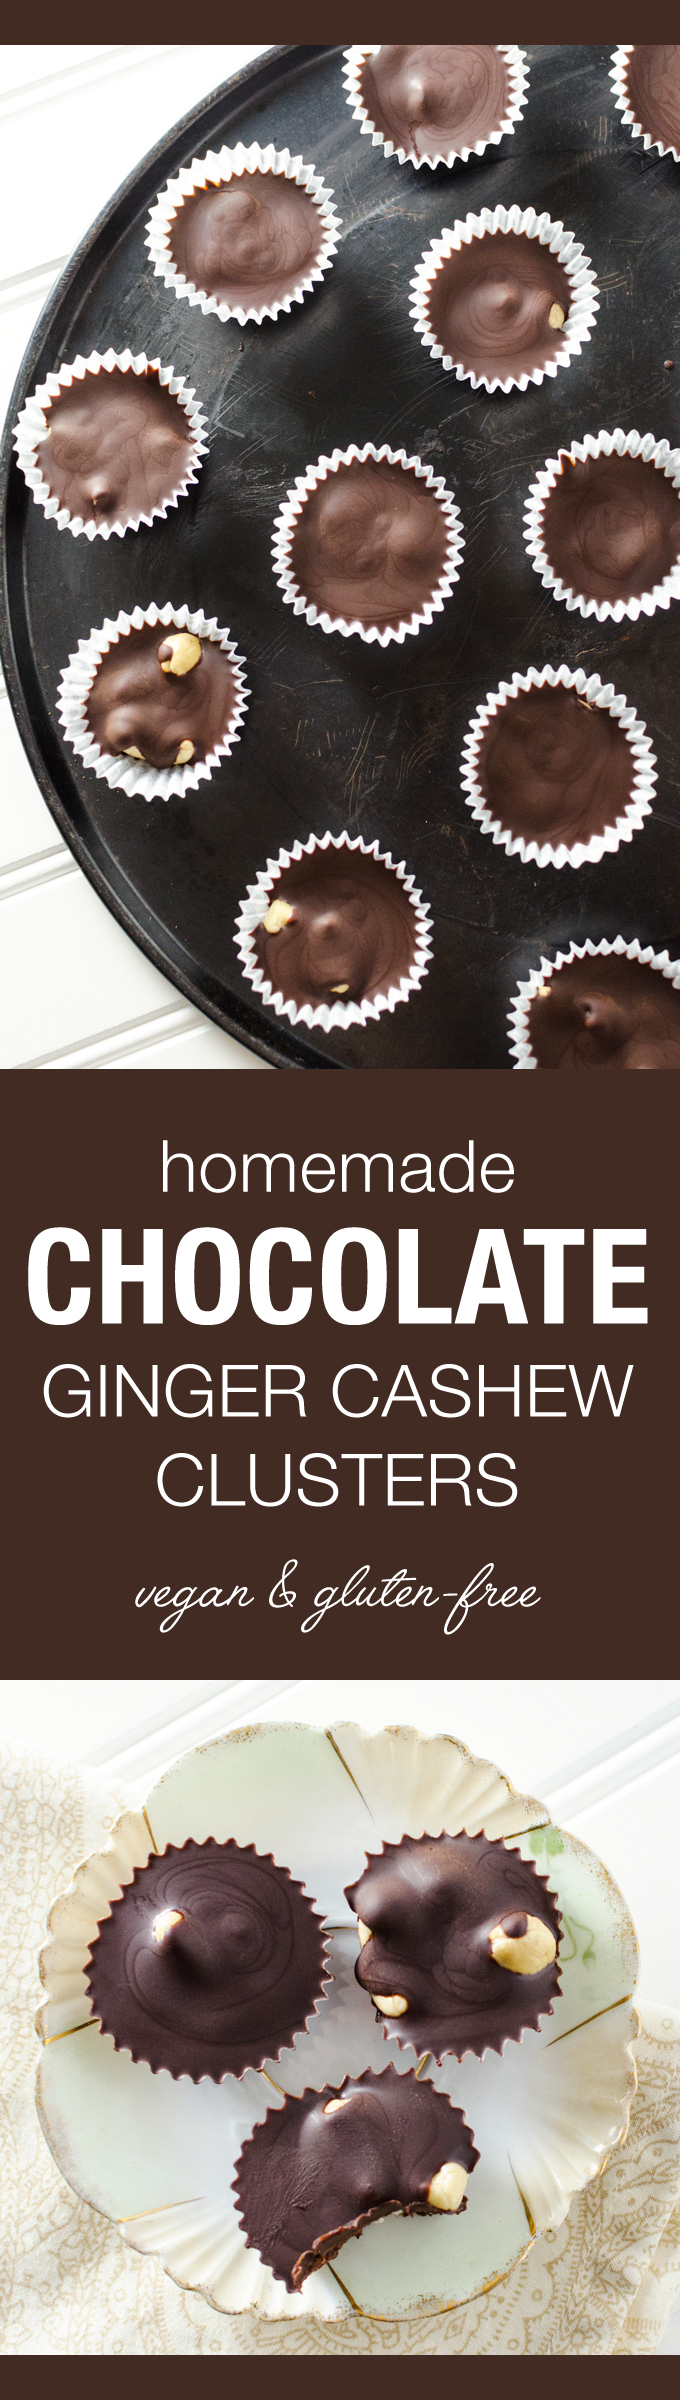 Homemade Chocolate Ginger Cashew Clusters - this gluten-free vegan candy recipe will satisfy your chocolate cravings without increasing your cane sugar intake. It's also super quick and easy to prepare! | VeggiePrimer.com